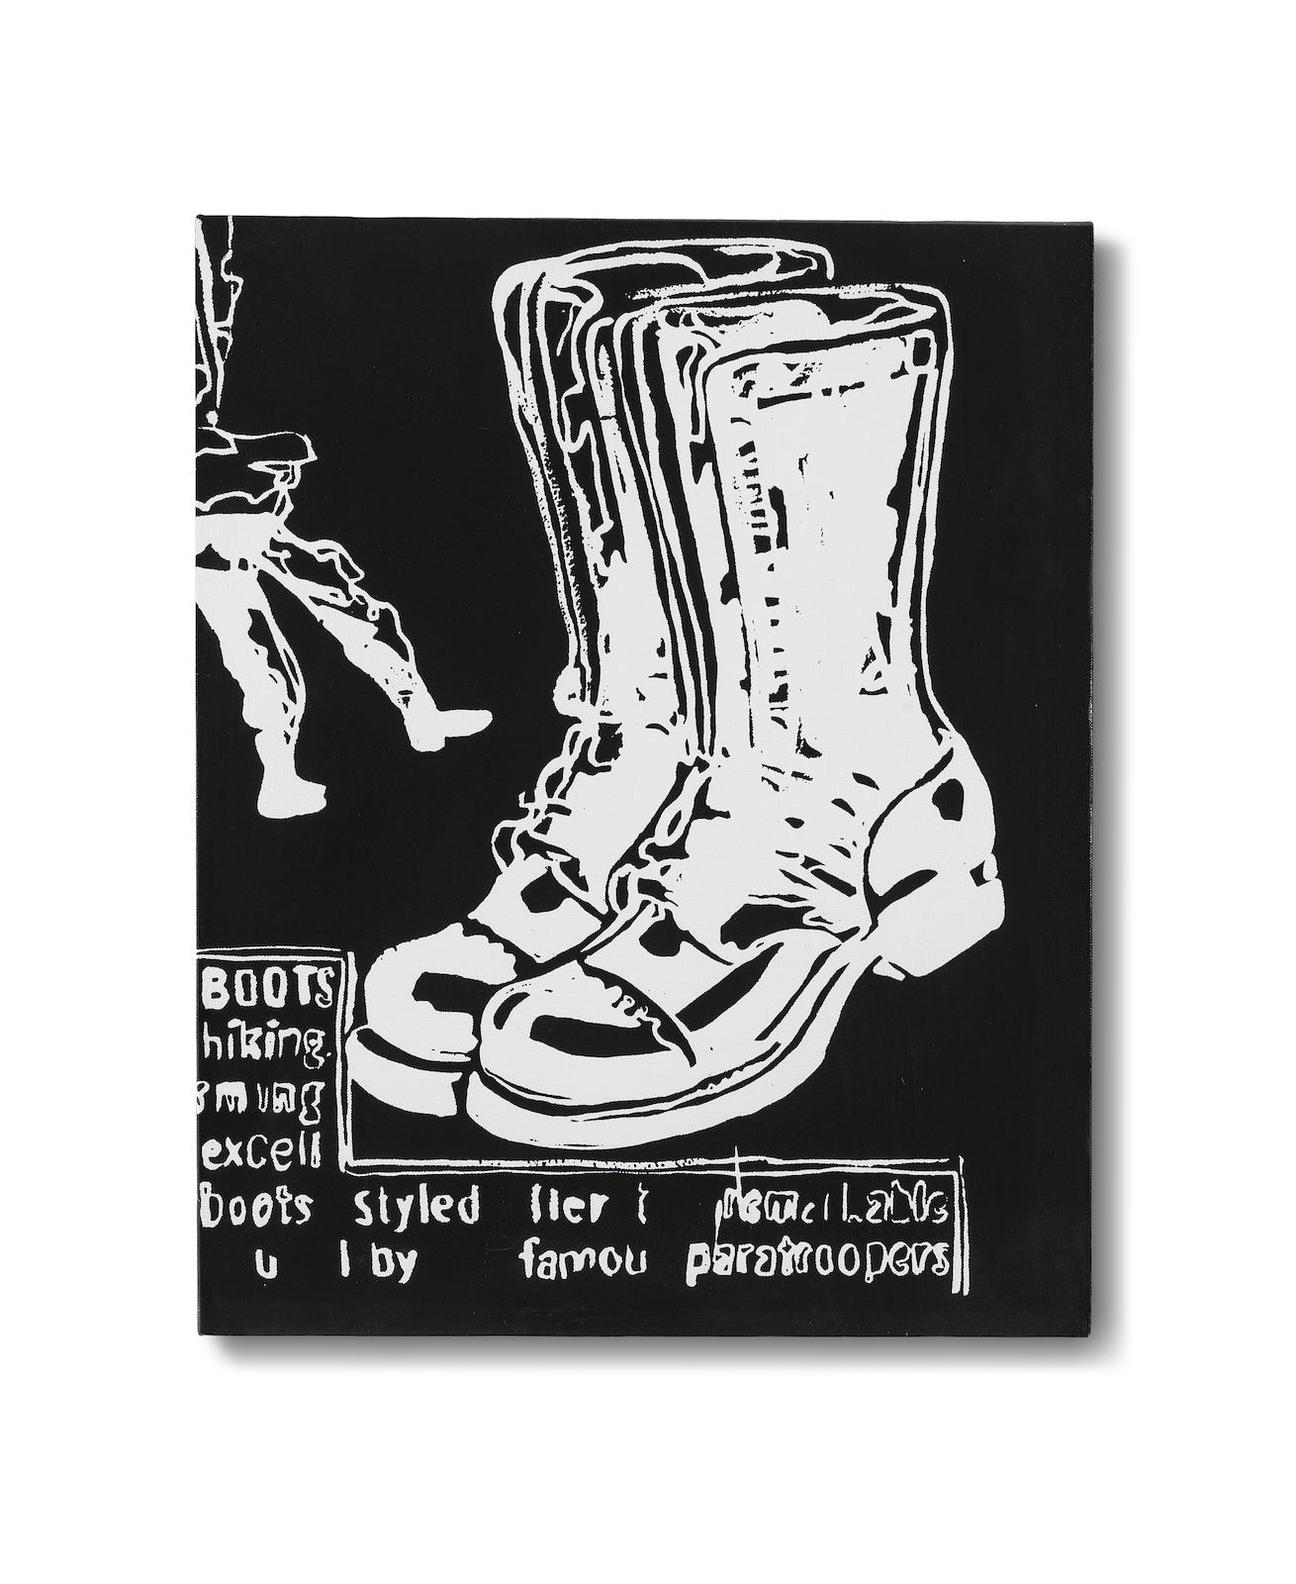 Andy Warhol-Paratrooper Boots-1986